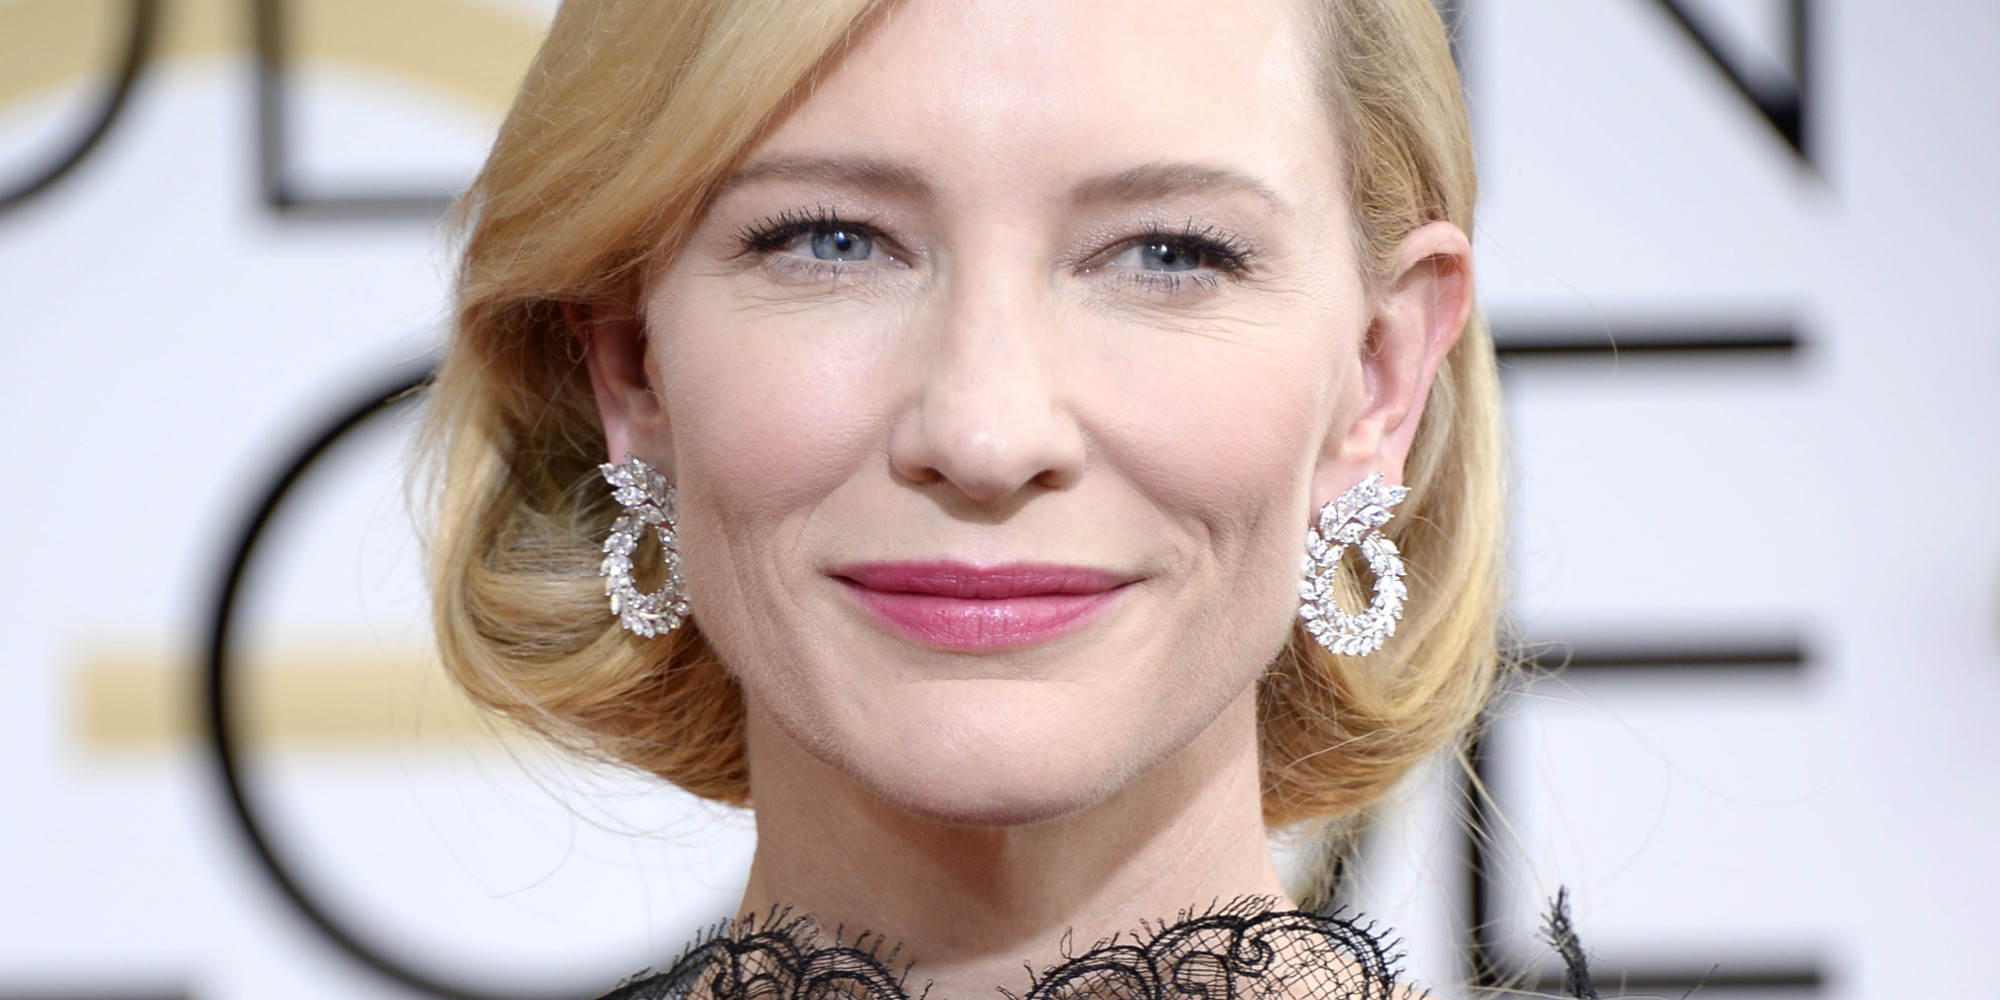 Cate Blanchett Golden Globes Dress 2014 Puts Her Back On The Fashion ...